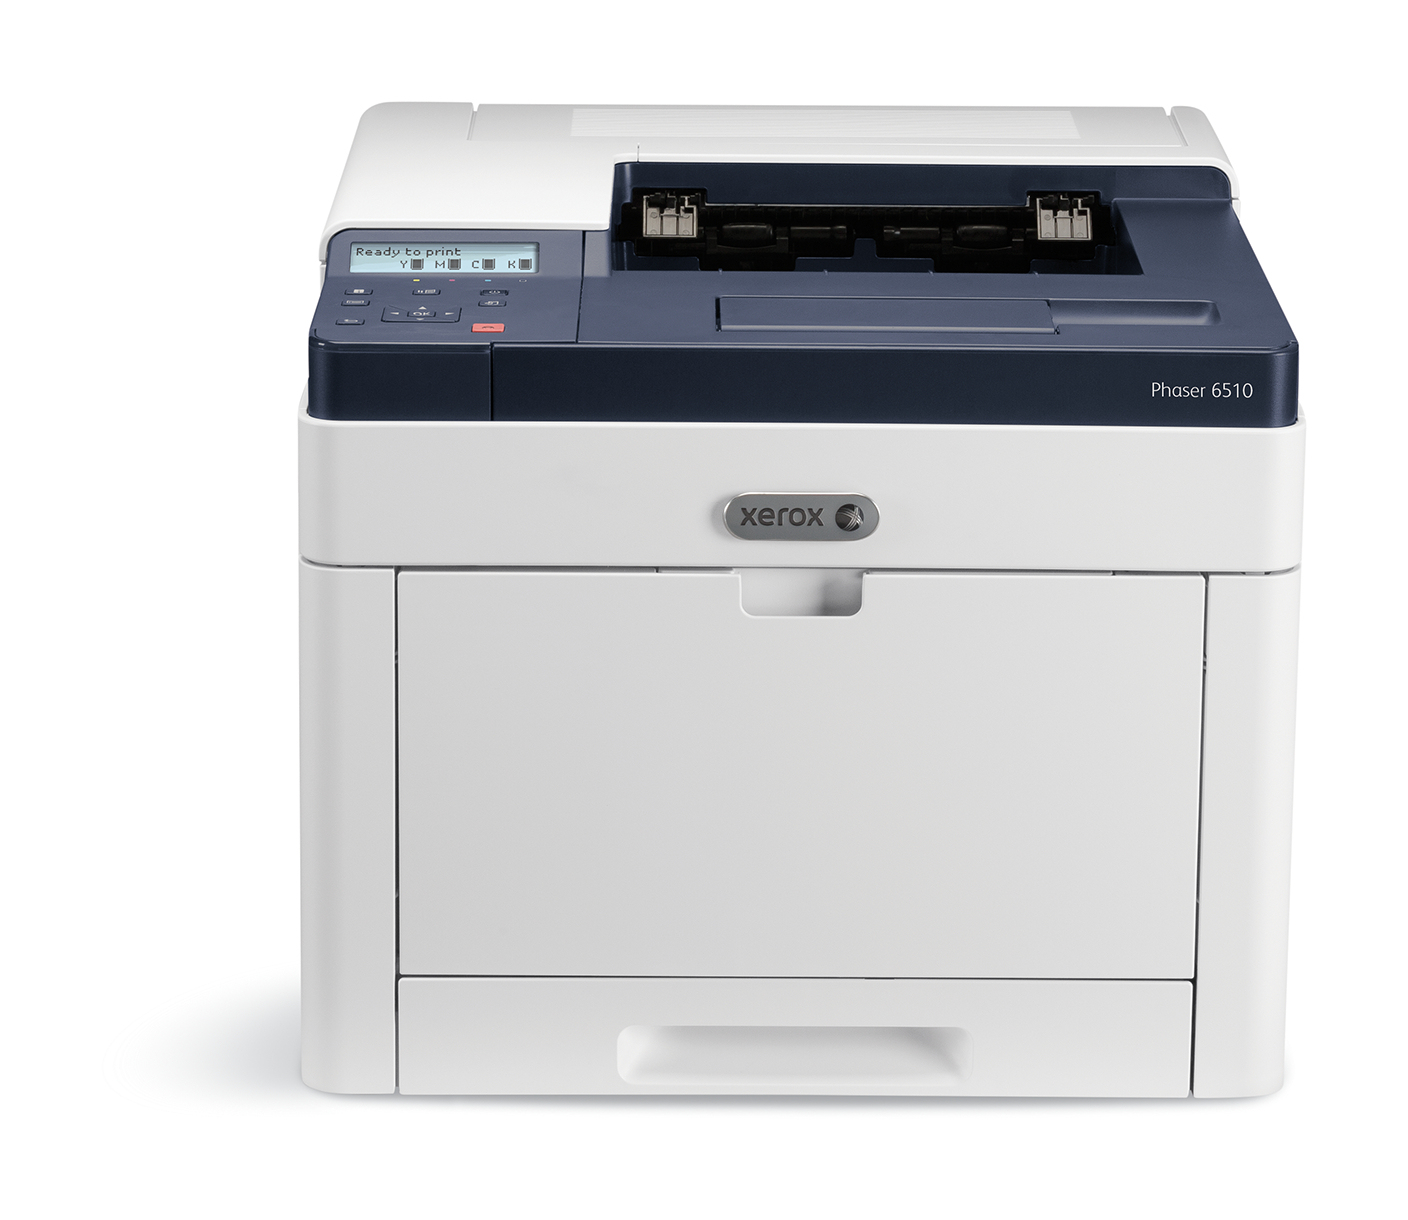 Xerox Phaser Ph 6510 Colour Printer, A4, 28/28Ppm, Usb/Ethernet, Sold